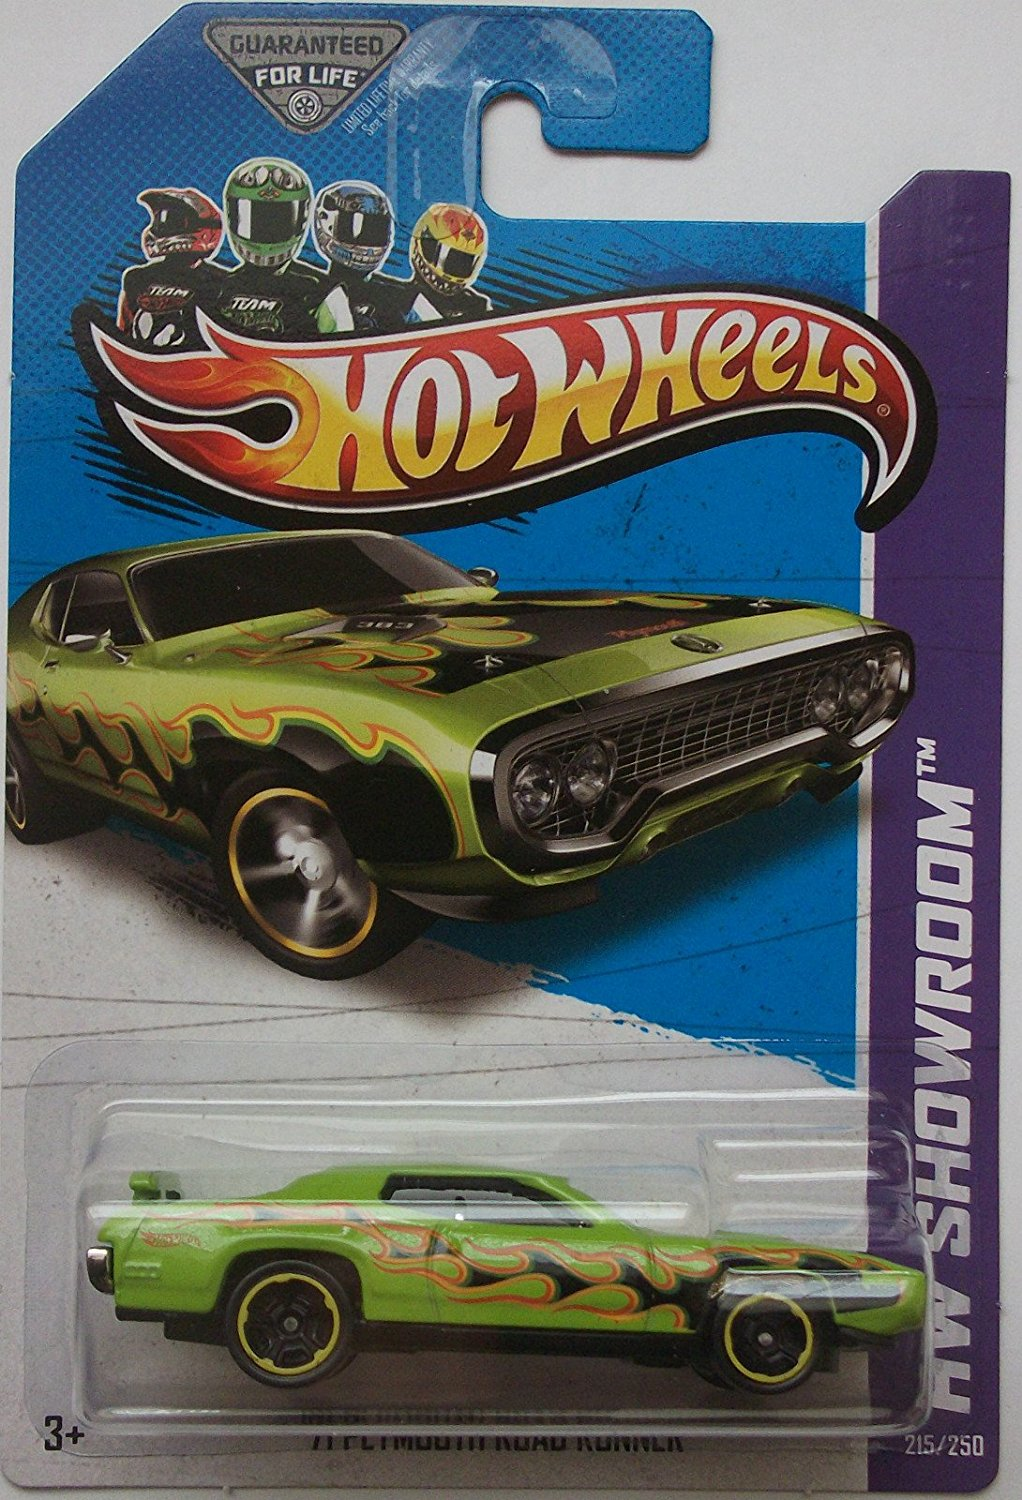 2013 Hot Wheels Hw Showroom Kmart Exclusive '71 Plymouth Roadrunner By Mattel by